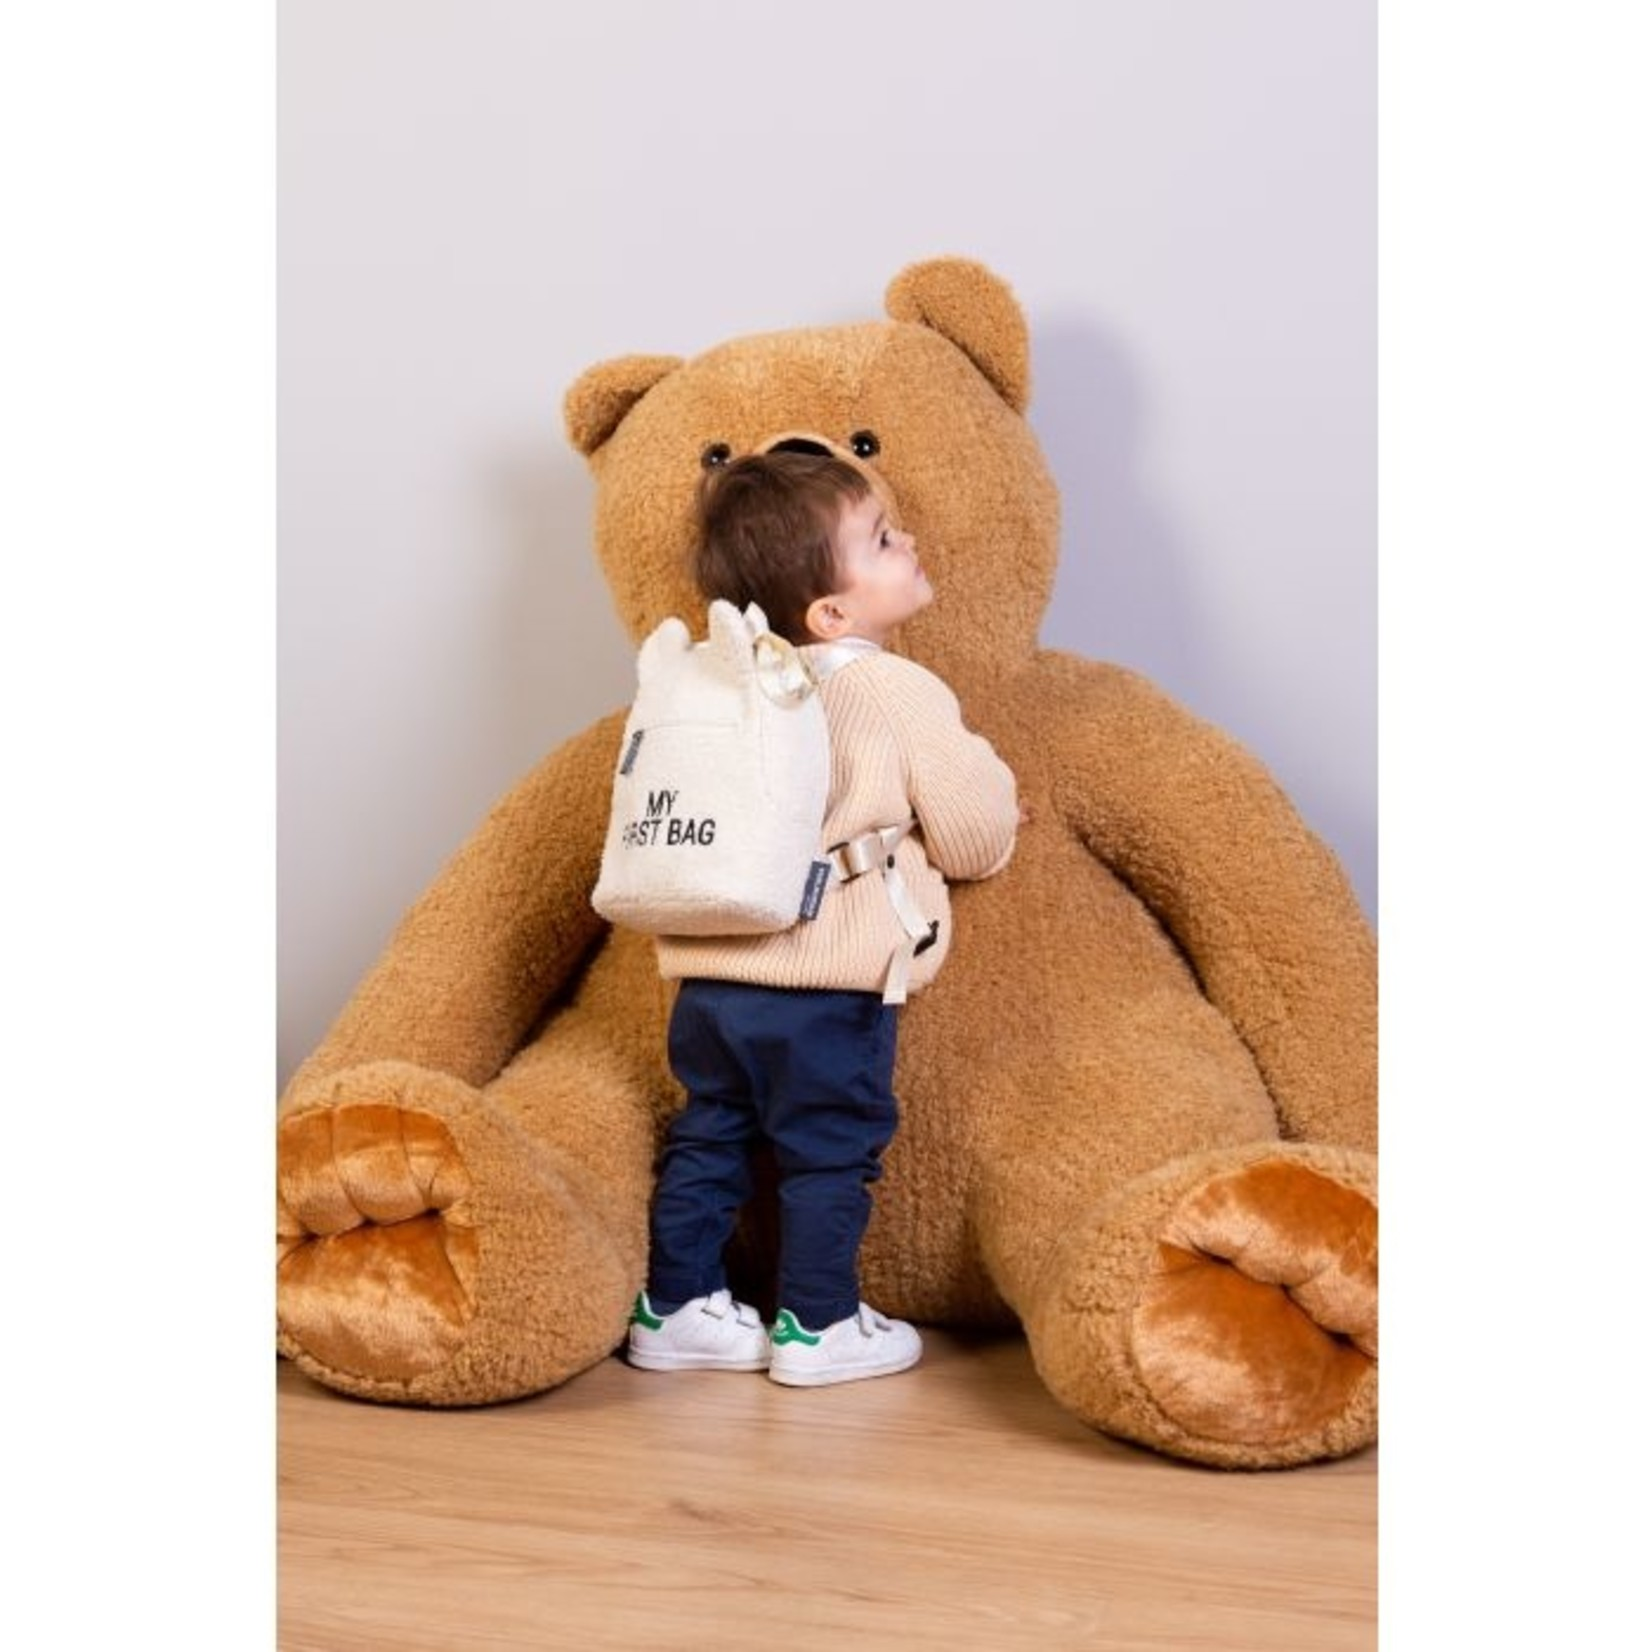 Childhome Childhome My First Bag Teddy Beige